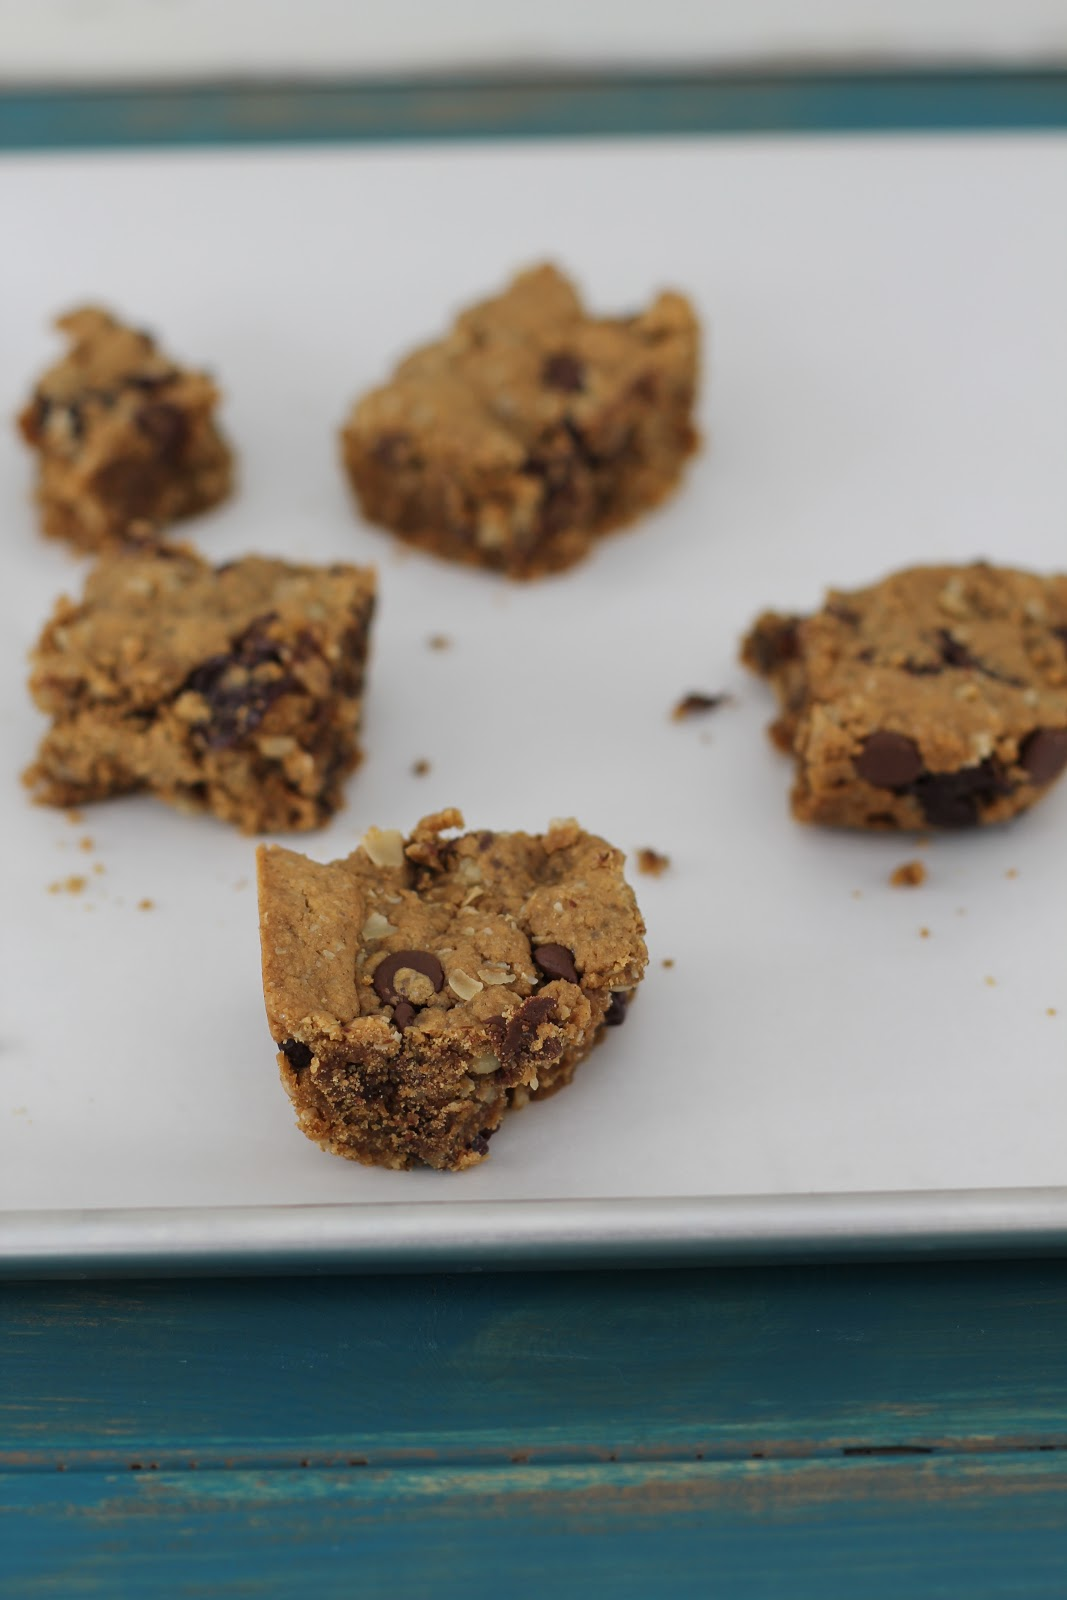 ... Now Doughvelopment: Peanut Butter Cherry Chocolate Chunk Oatmeal Bars